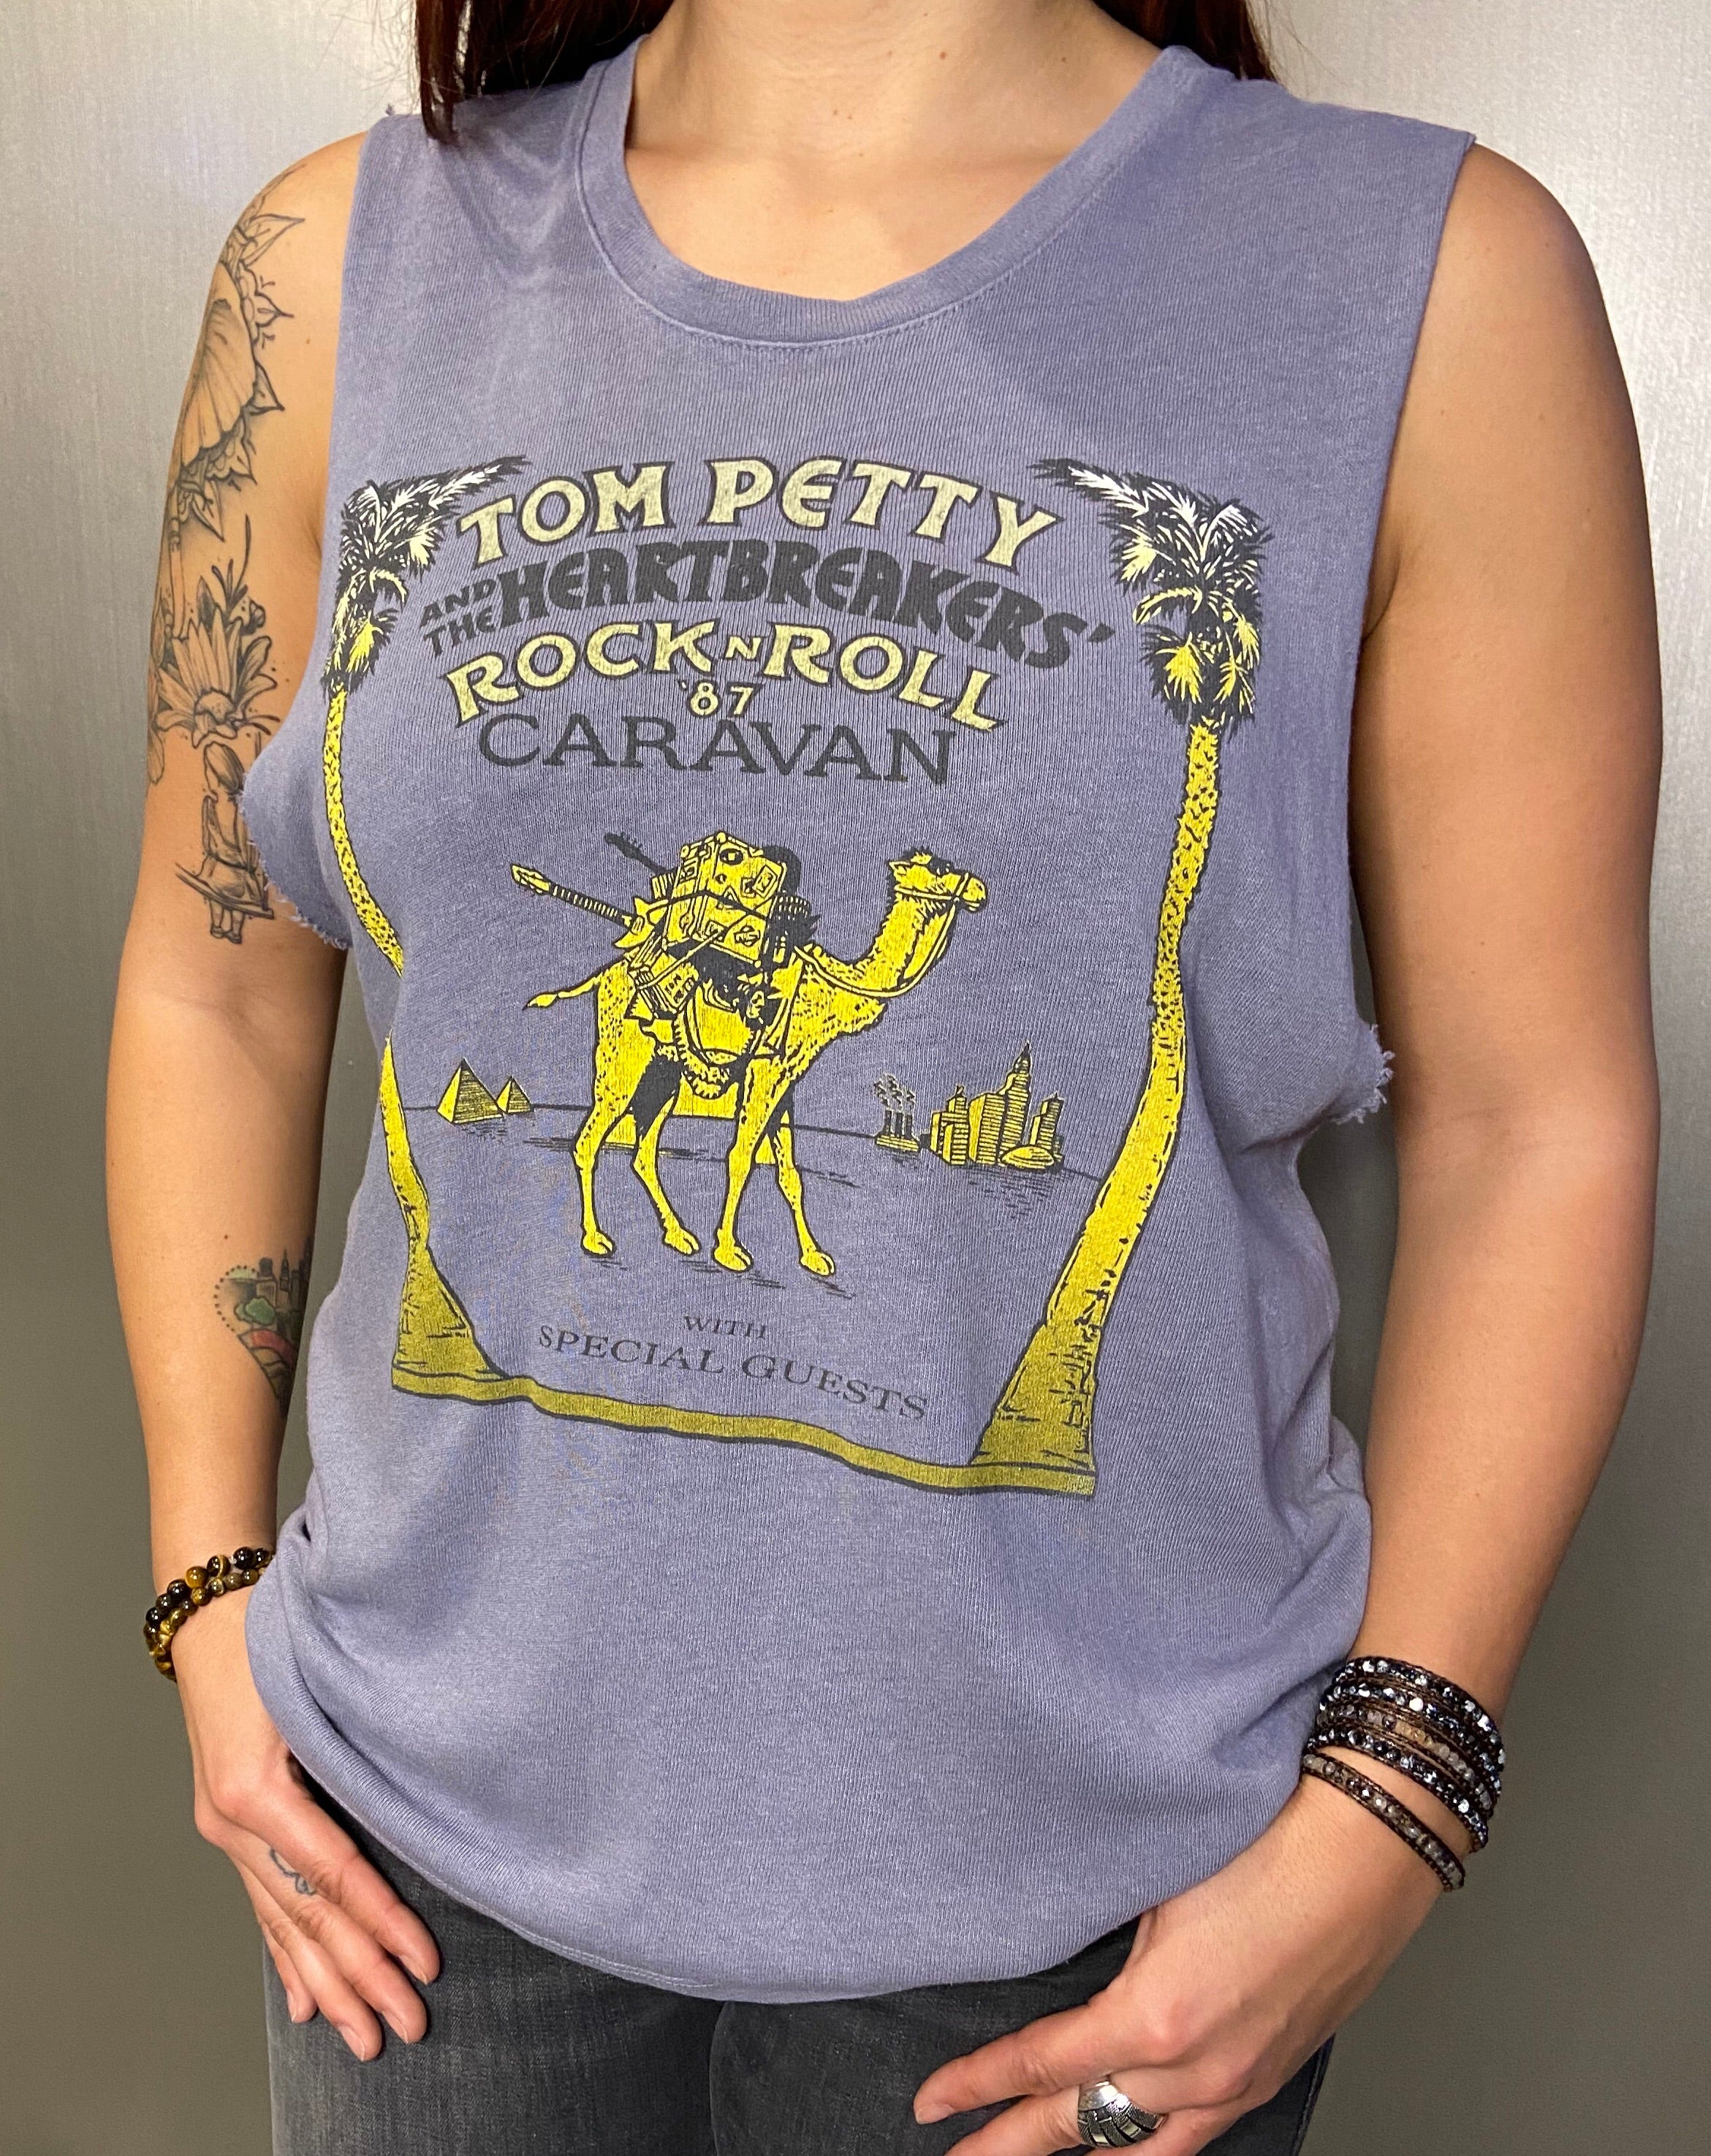 Tom Petty graphic muscle tee